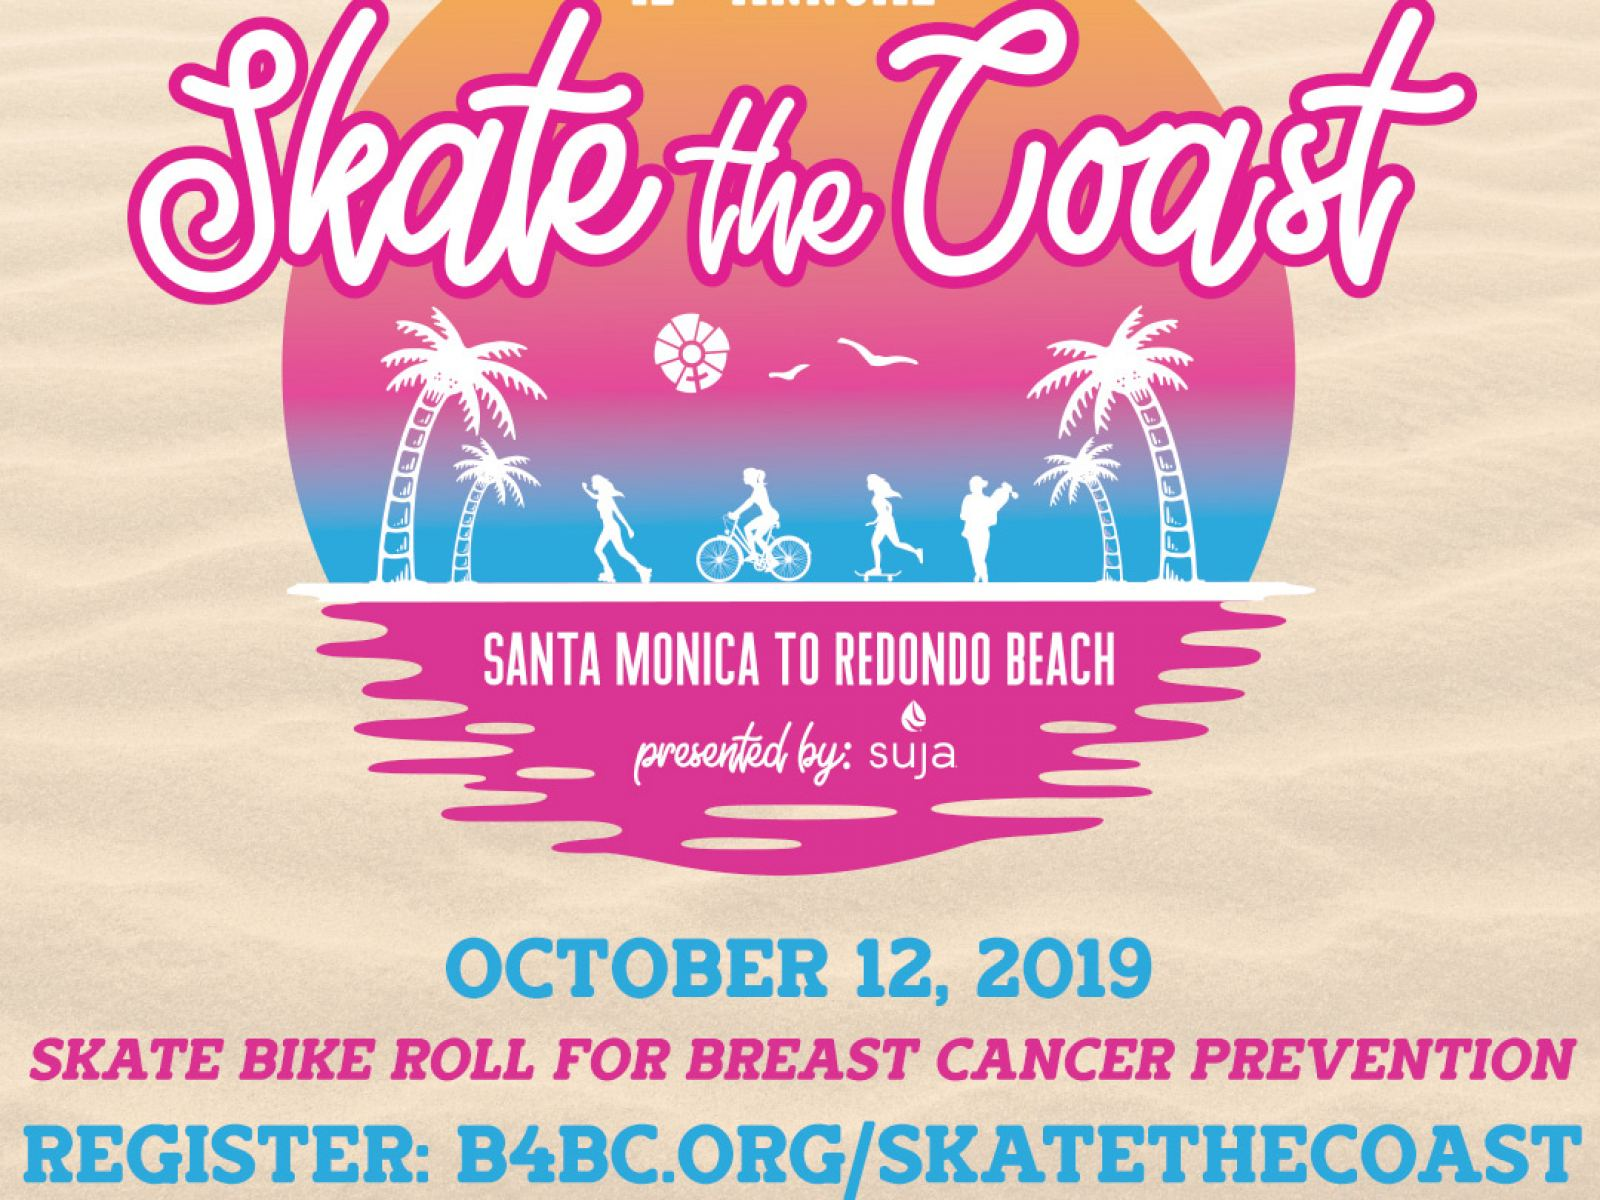 BOARDING FOR BREAST CANCER HOSTS 12th ANNUAL SKATE THE COAST EVENT FOR BREAST CANCER PREVENTION